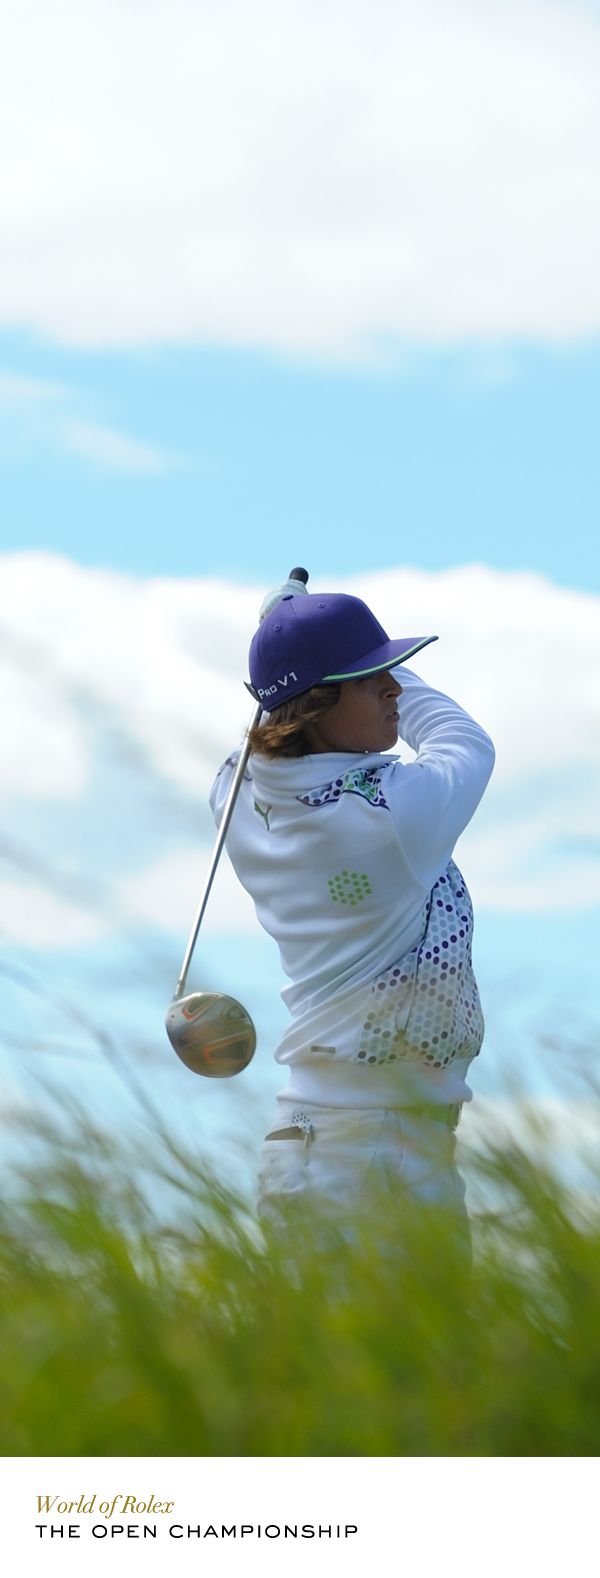 Rickie Fowler at The Open Championship in 2010. #Rolex #RolexOfficial